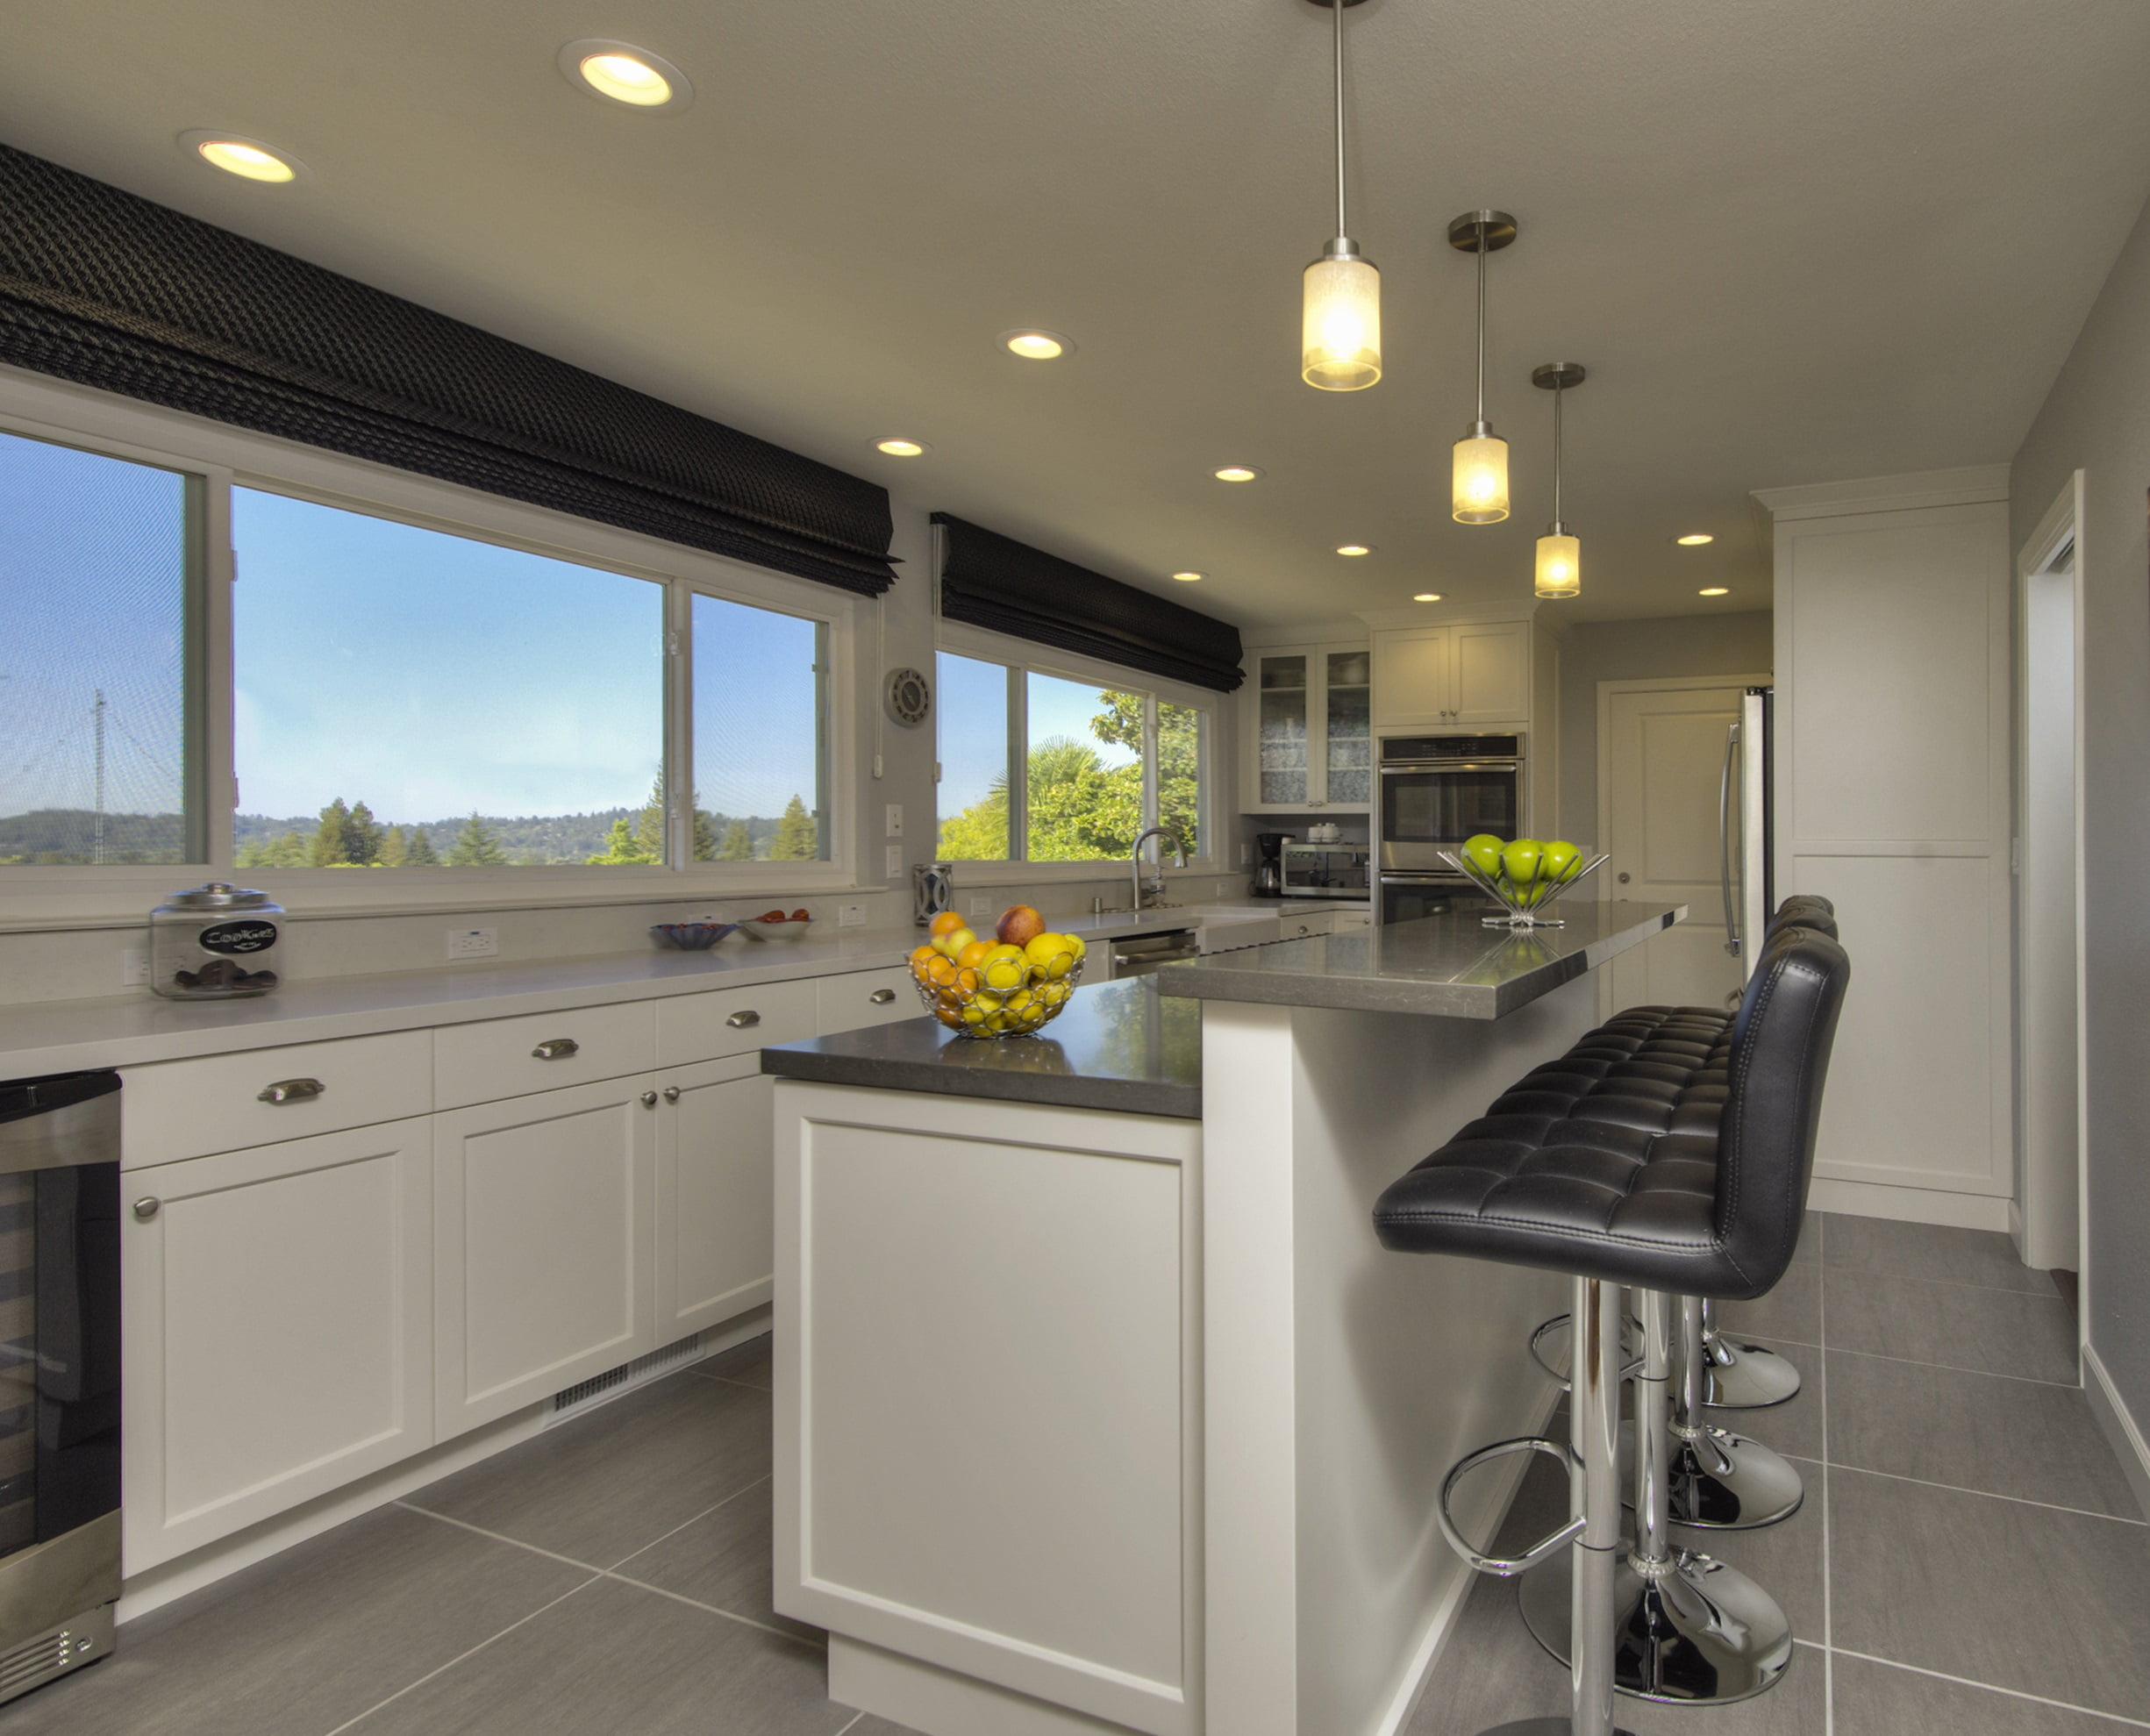 Kitchen Remodel & Bathroom Addition, Santa Rosa